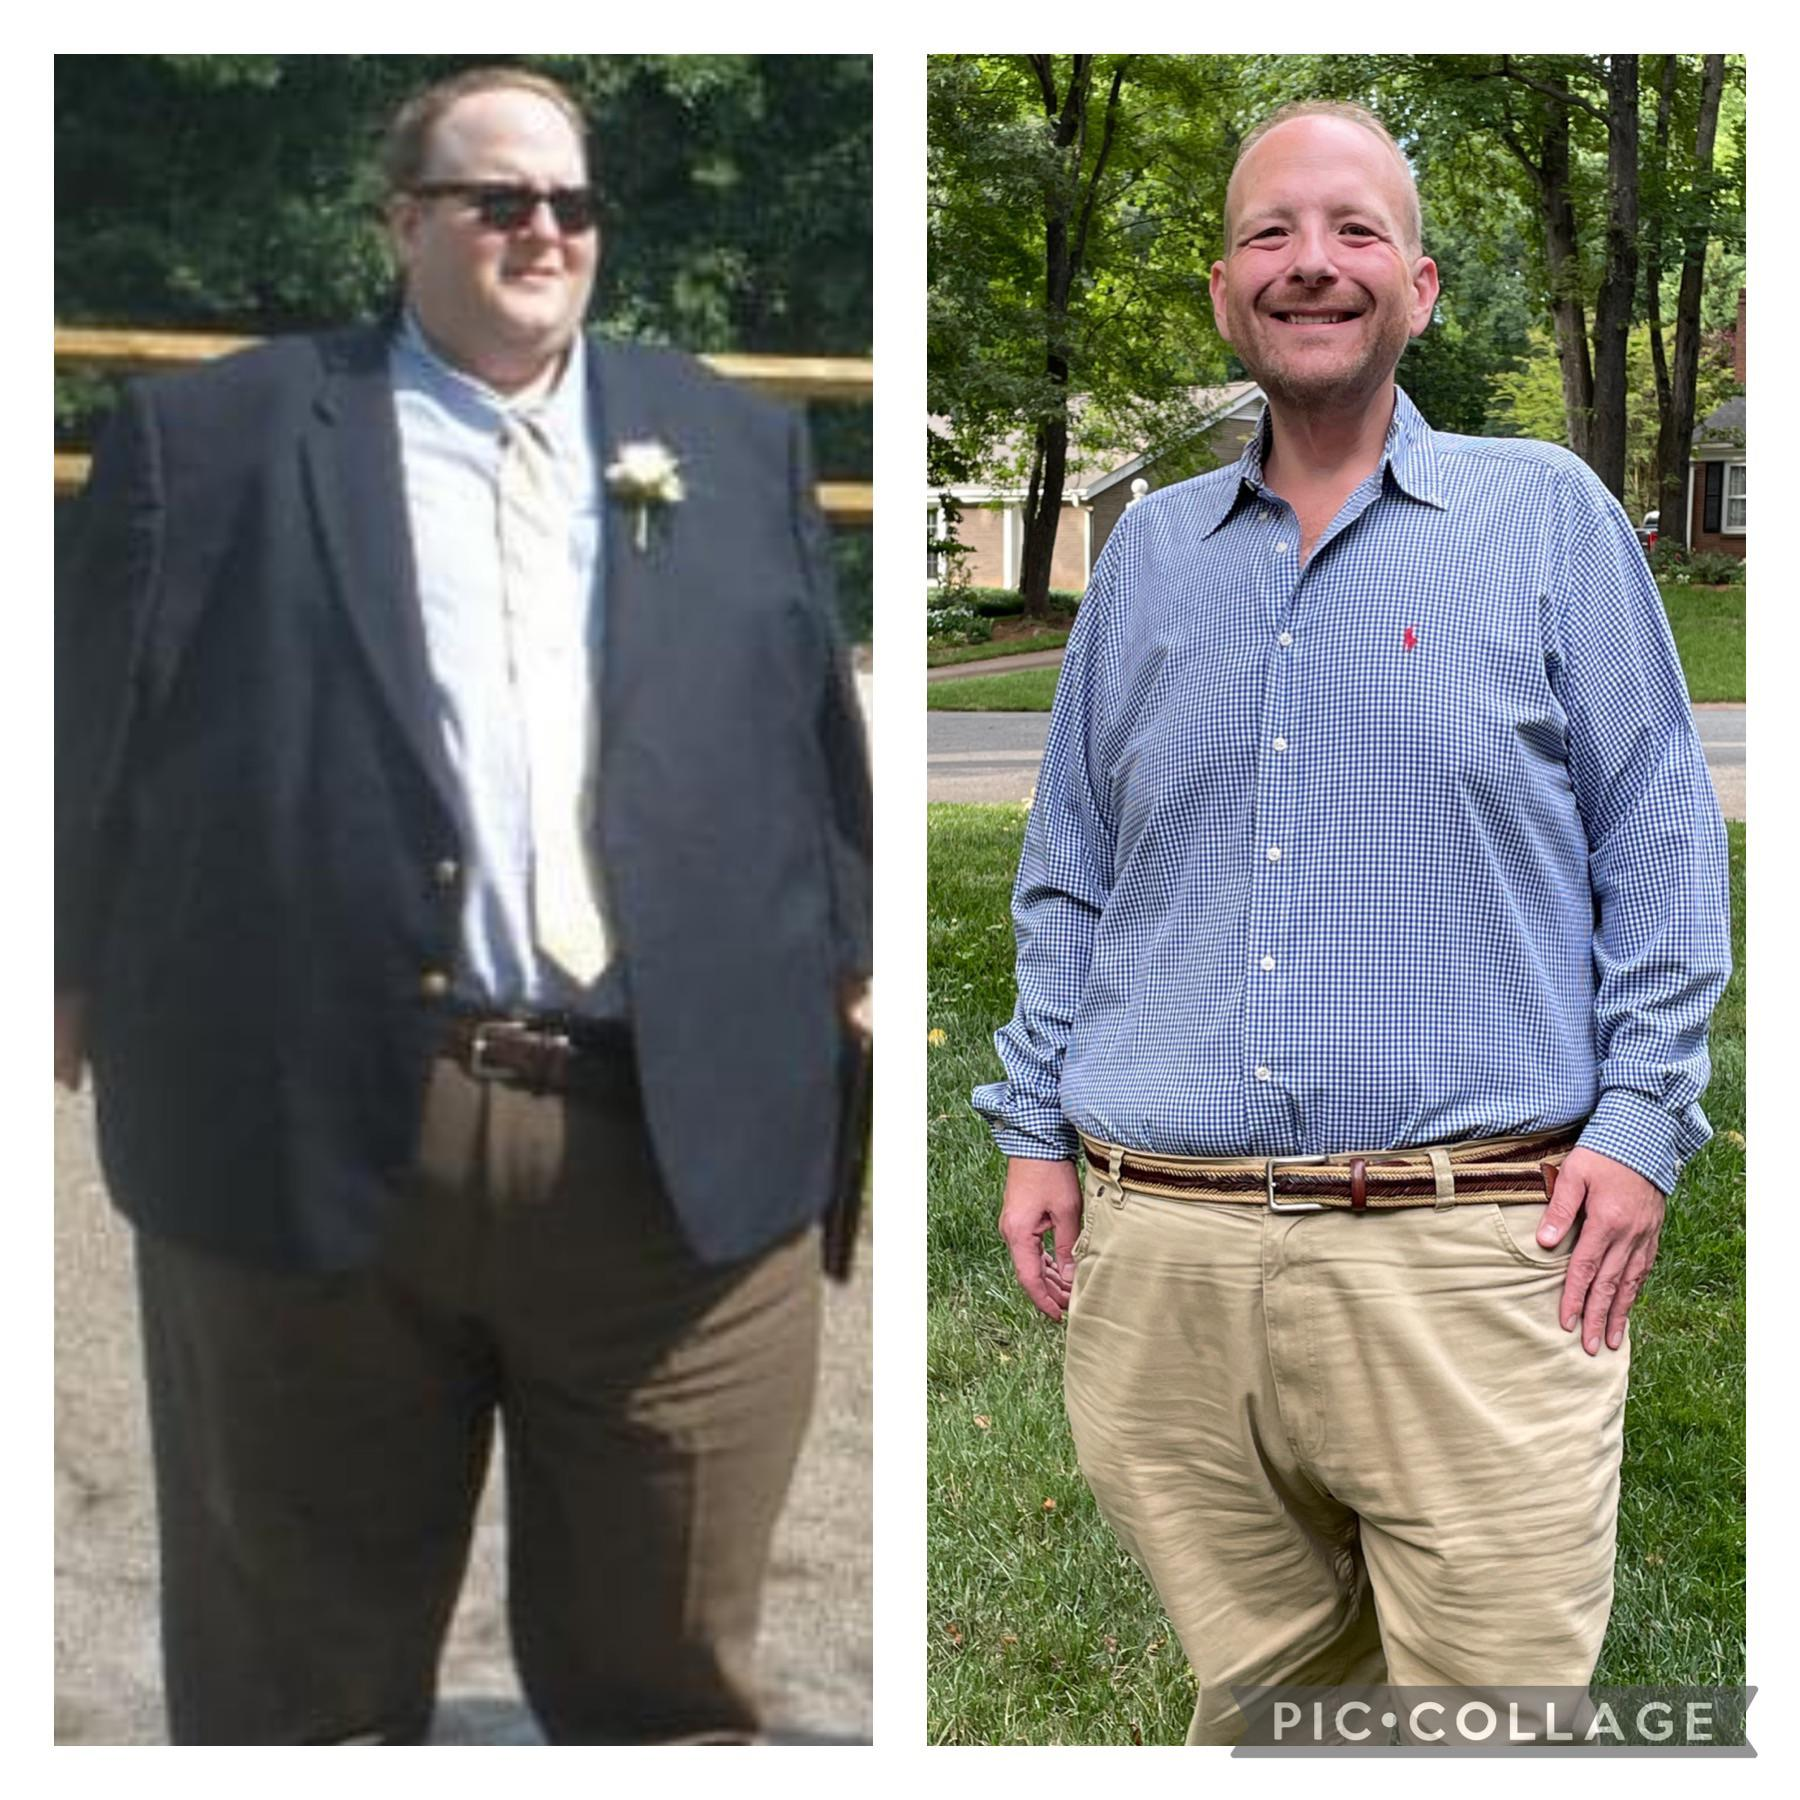 5 foot 11 Male Before and After 335 lbs Fat Loss 610 lbs to 275 lbs